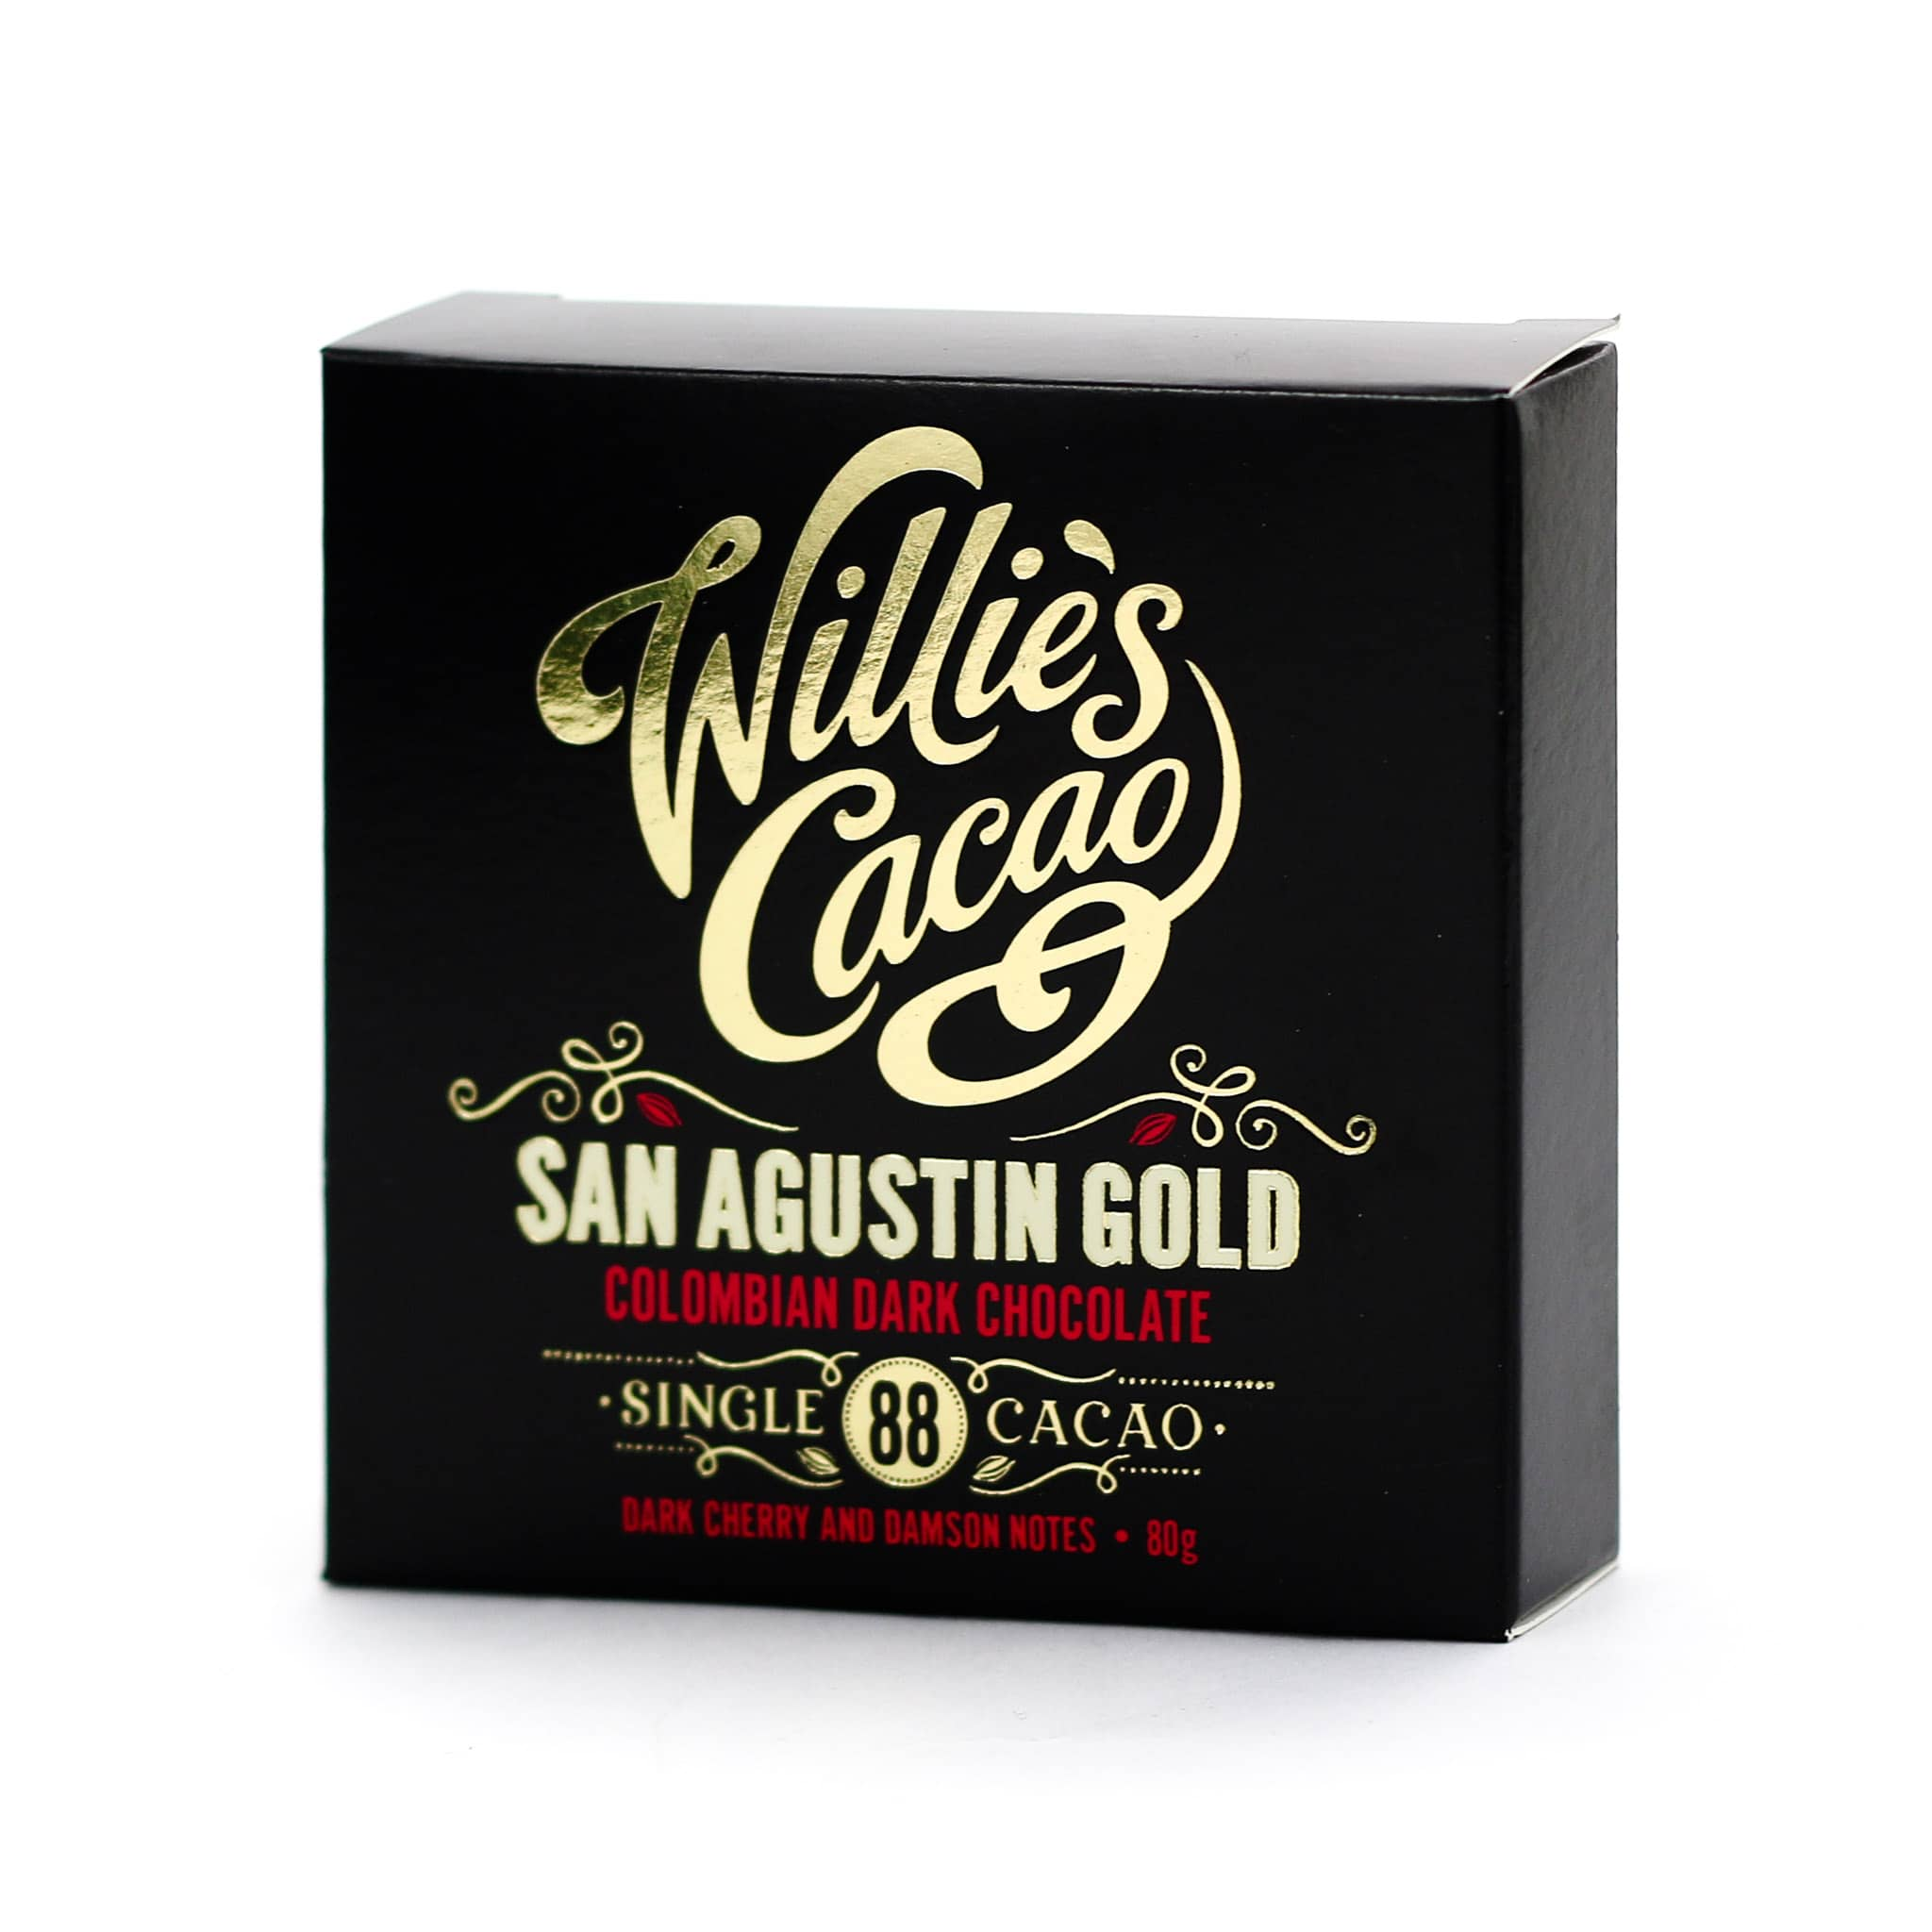 Willie's Cacao San Agustin Gold 88% Colombian Dark Chocolate 80g